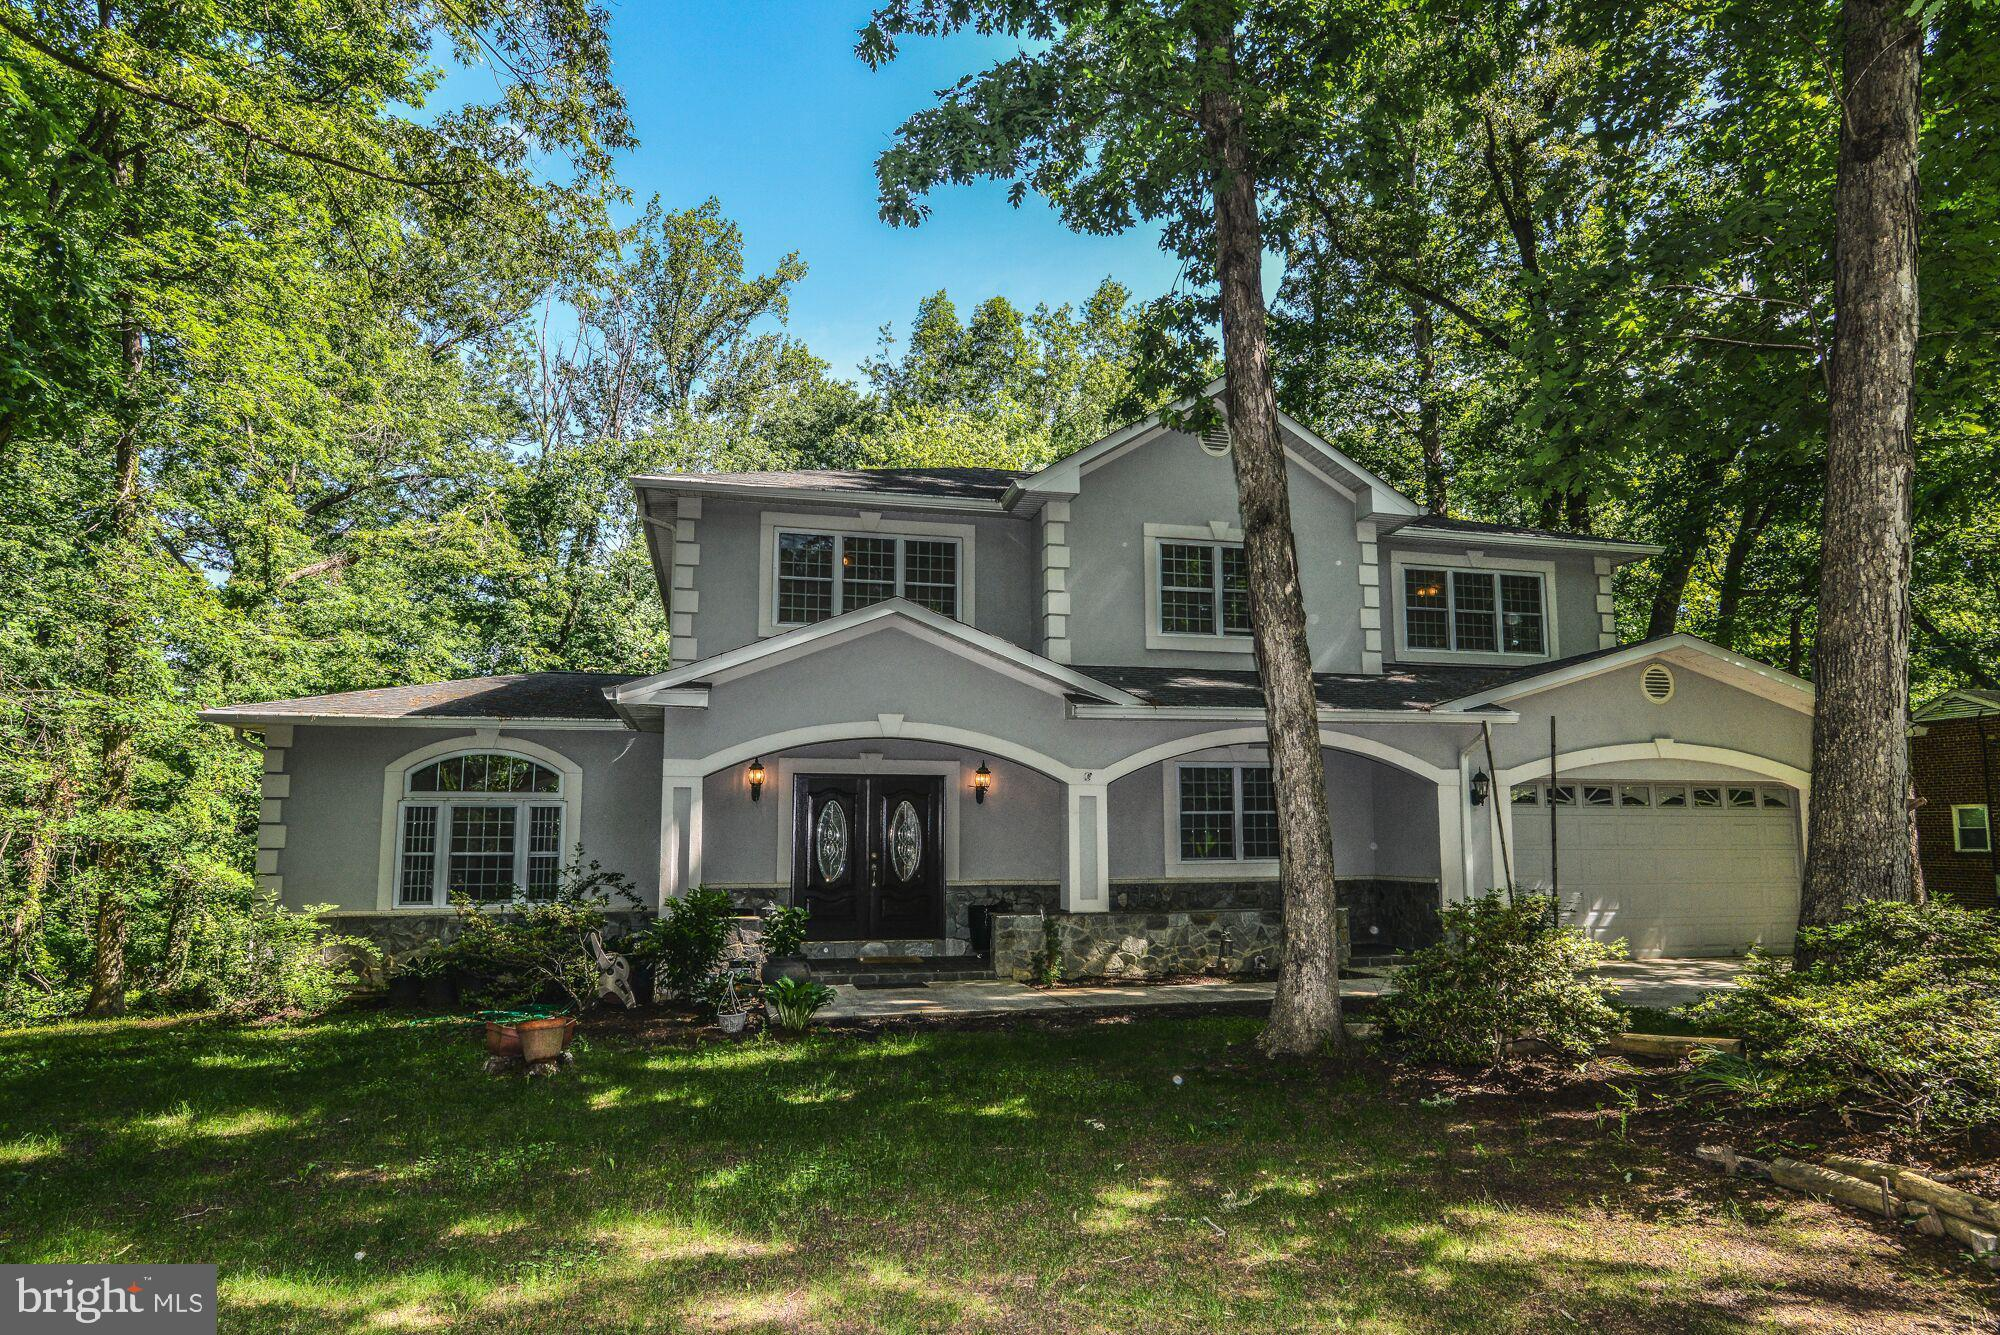 ** OPEN HOUSE SUNDAY 9.1.19 from 1-4**Custom built in 2008, this luxury home sitting on nearly an acre of wooded privacy and backing up to a Northern Virginia Conservation Area, offers spectacular views in all directions. With 3 beautifully finished levels spanning approximately 4000 square feet, this home offers plenty of space inside and out. The main level features Brazilian Cherry floors throughout, formal living room with fireplace, large formal dining room, along with your chef's kitchen and separate family room with access to the deck. Additionally, the main level includes a library/office and a main-level bedroom perfect as an au-pair or mother-in-law suite. Upstairs you'll find 5 bedrooms with all new carpet and huge closets, including the master suite with a separate soaking Jacuzzi tub in it's spa-like bath. There are 2 additional bathrooms, complete with ceramic tile and granite counters, upstairs as well. The very spacious walk out lower level houses 2 more bedrooms, huge storage rooms (both being used for storage so please excuse the mess), wet bar, family room and another full bath!  The lower level has brand new plush carpet.  Contracts will be considered and reviewed immediately upon receipt.